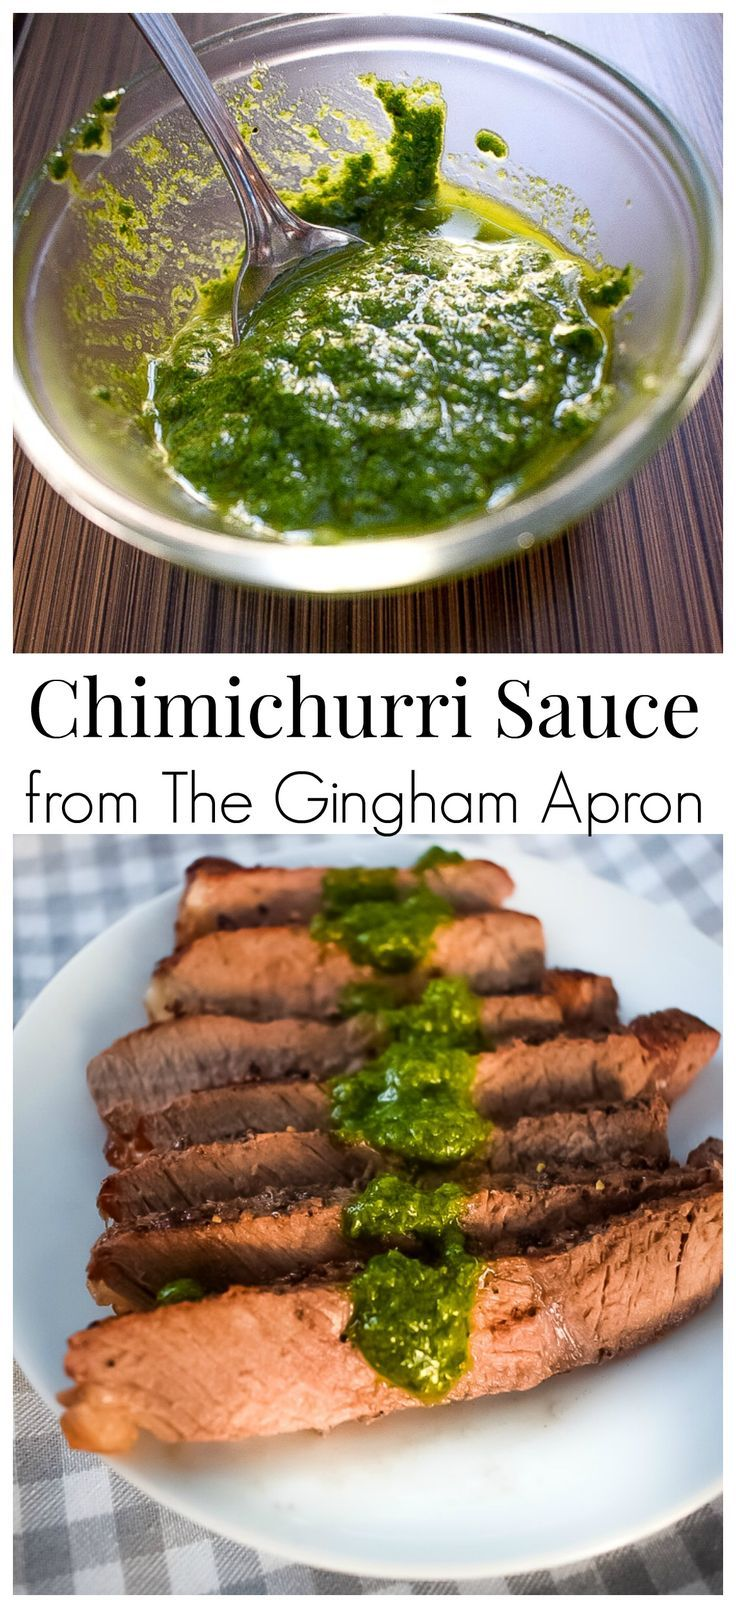 Chimichurri Sauce- a South American specialty that combines the fresh flavors of mint, parsley, and cilantro. So delicious over steaks, chicken, or seafood. #fresh #herbs #cilantro